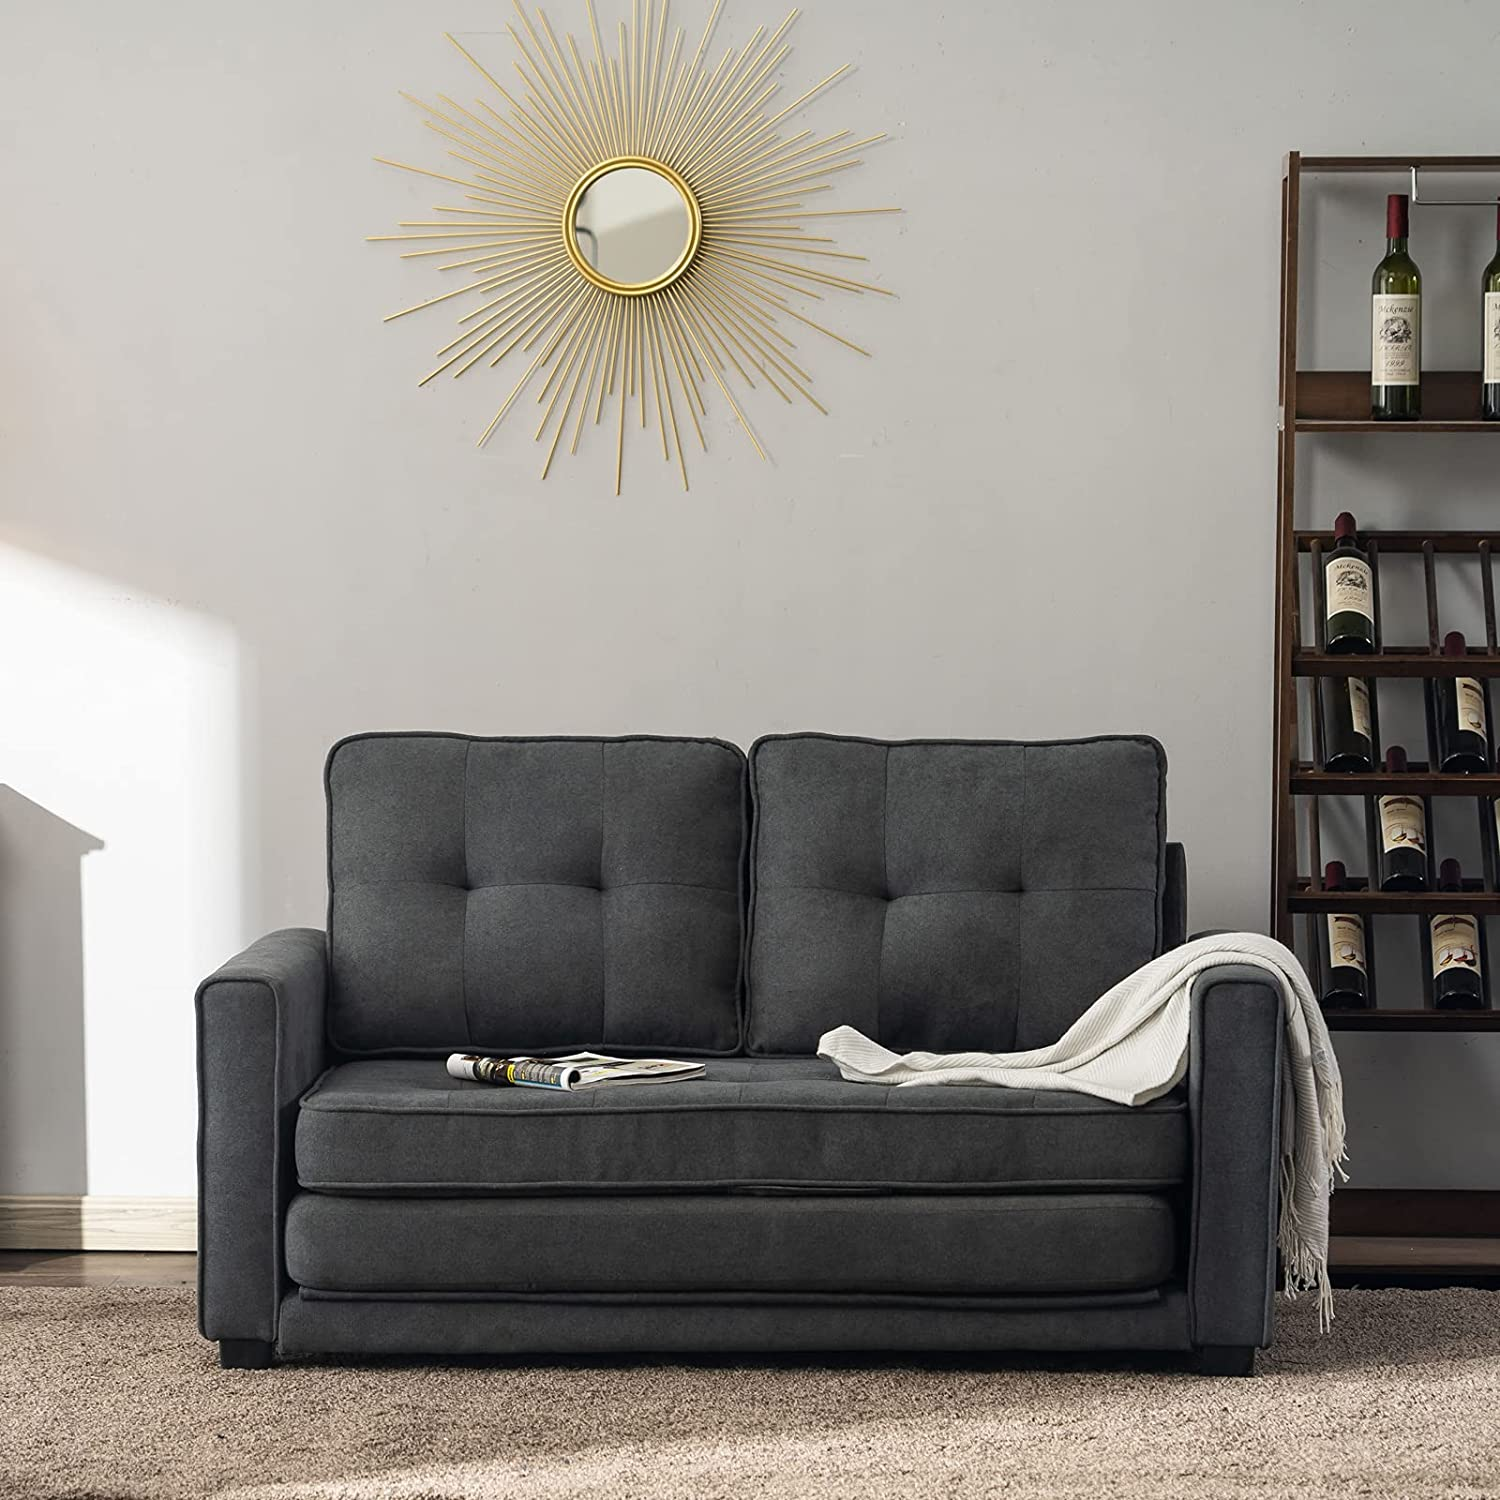 Sksl Modern and Simple Nordic Style Double Sofa Bed